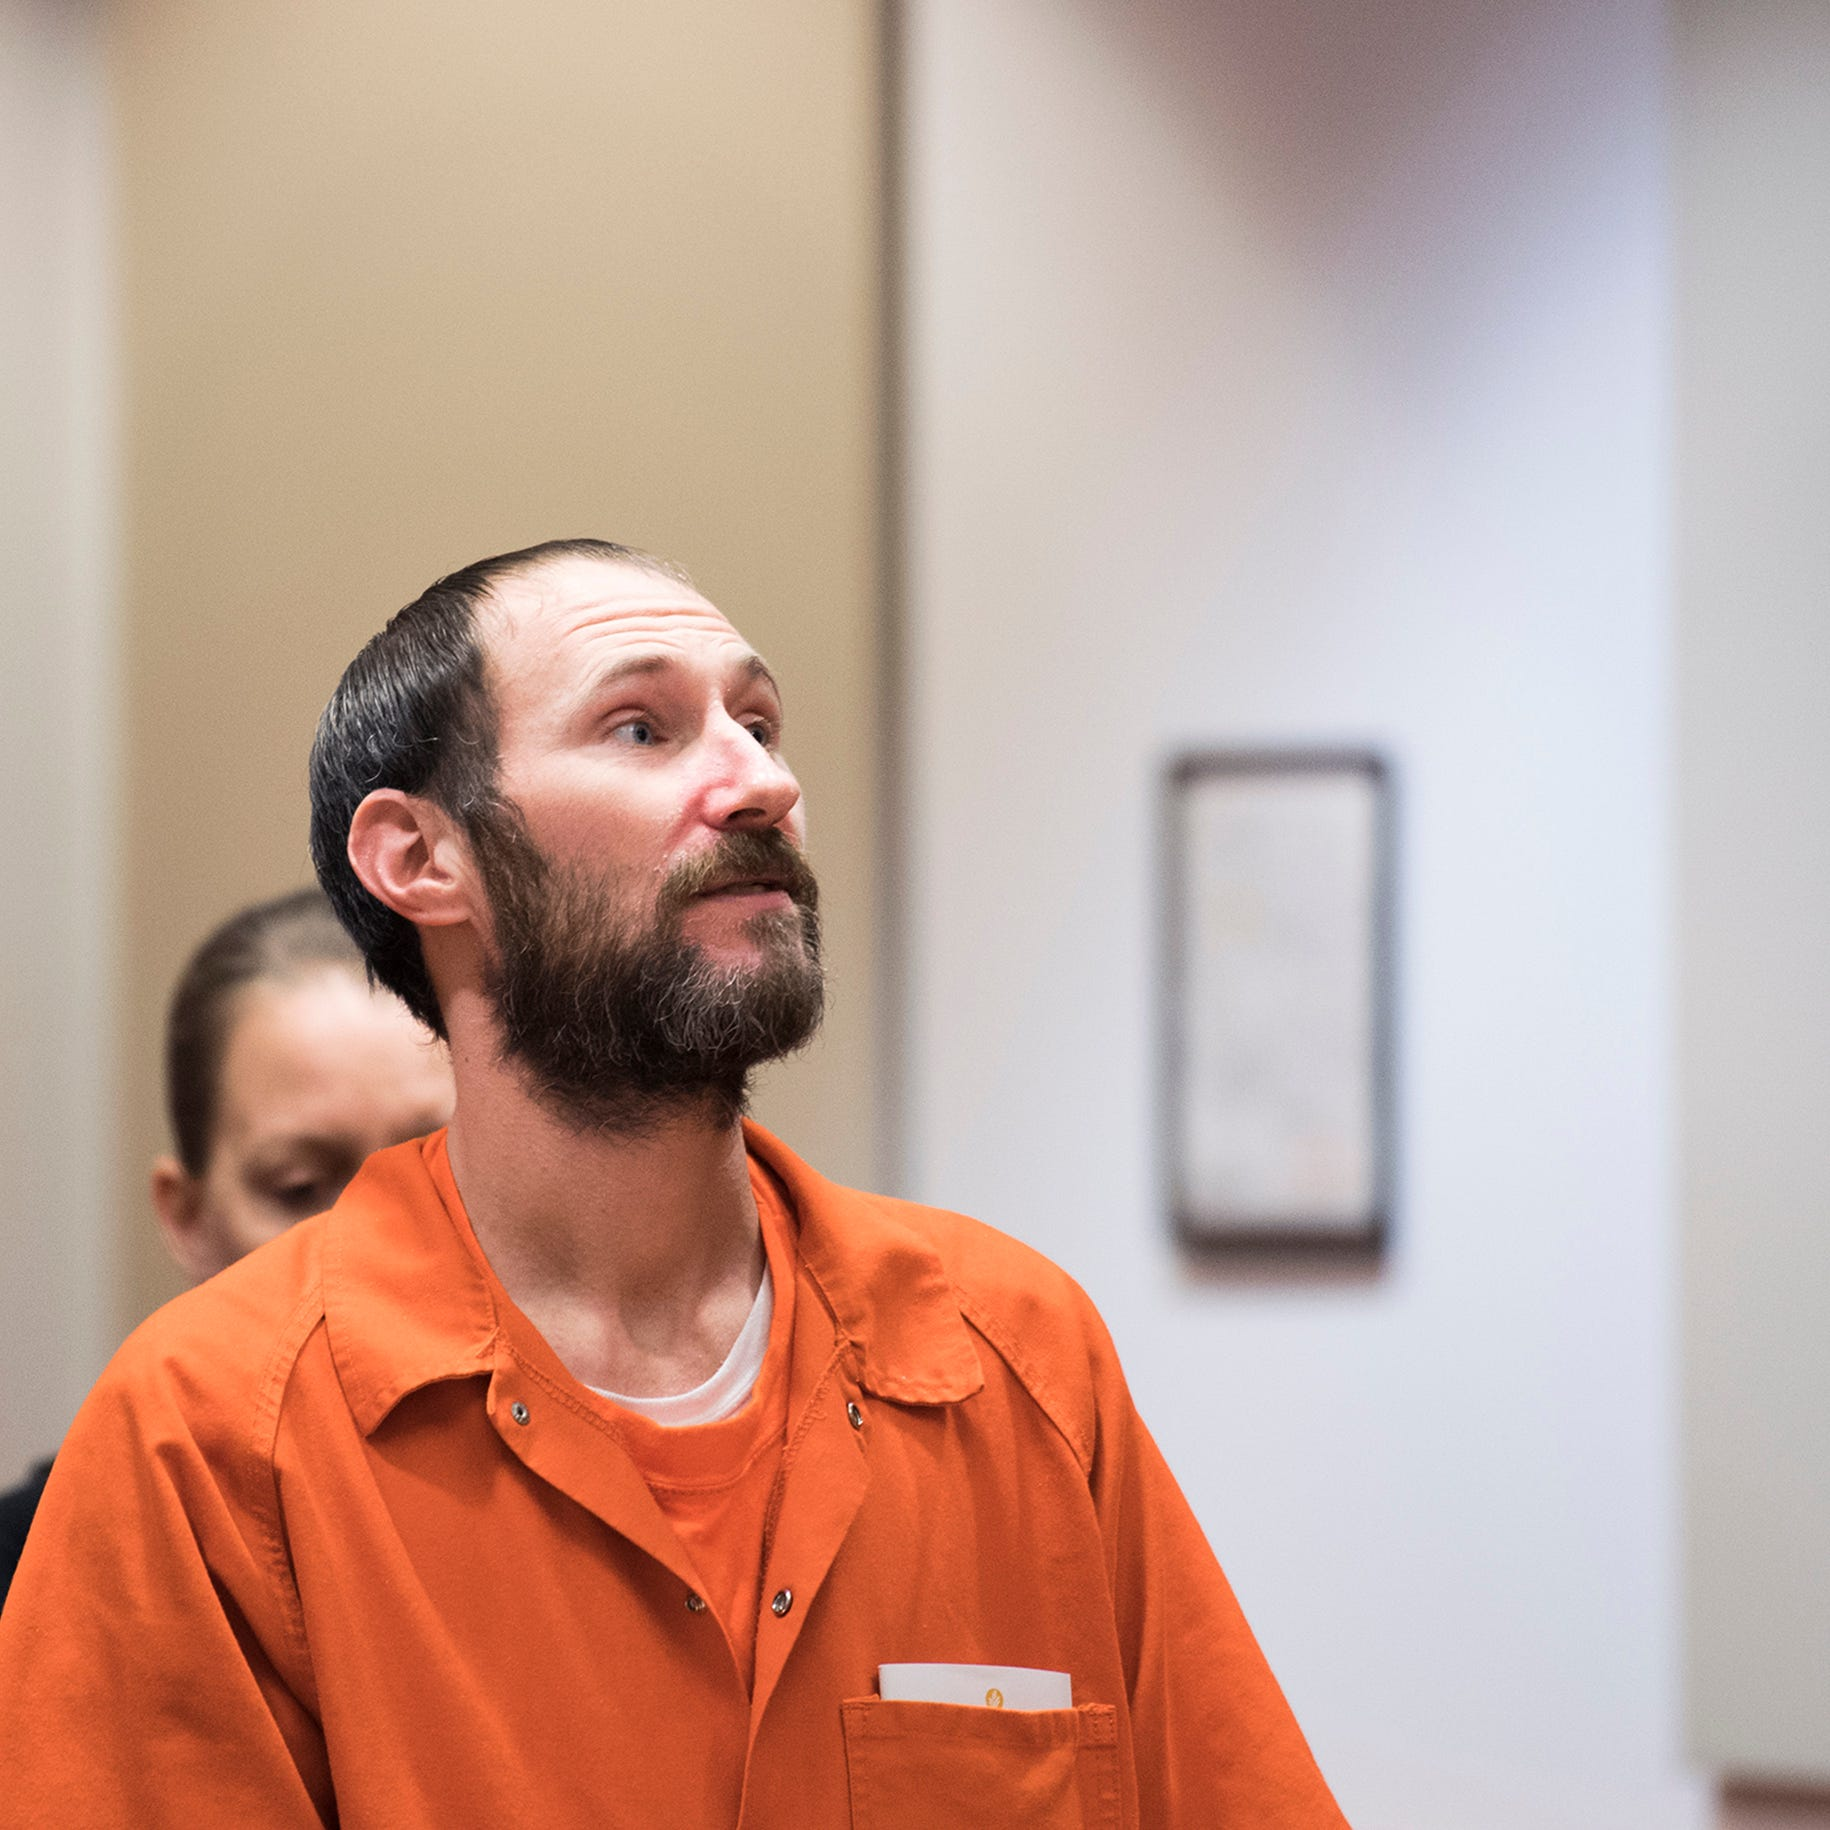 Bobbitt gets probation, drug court in GoFundMe plea